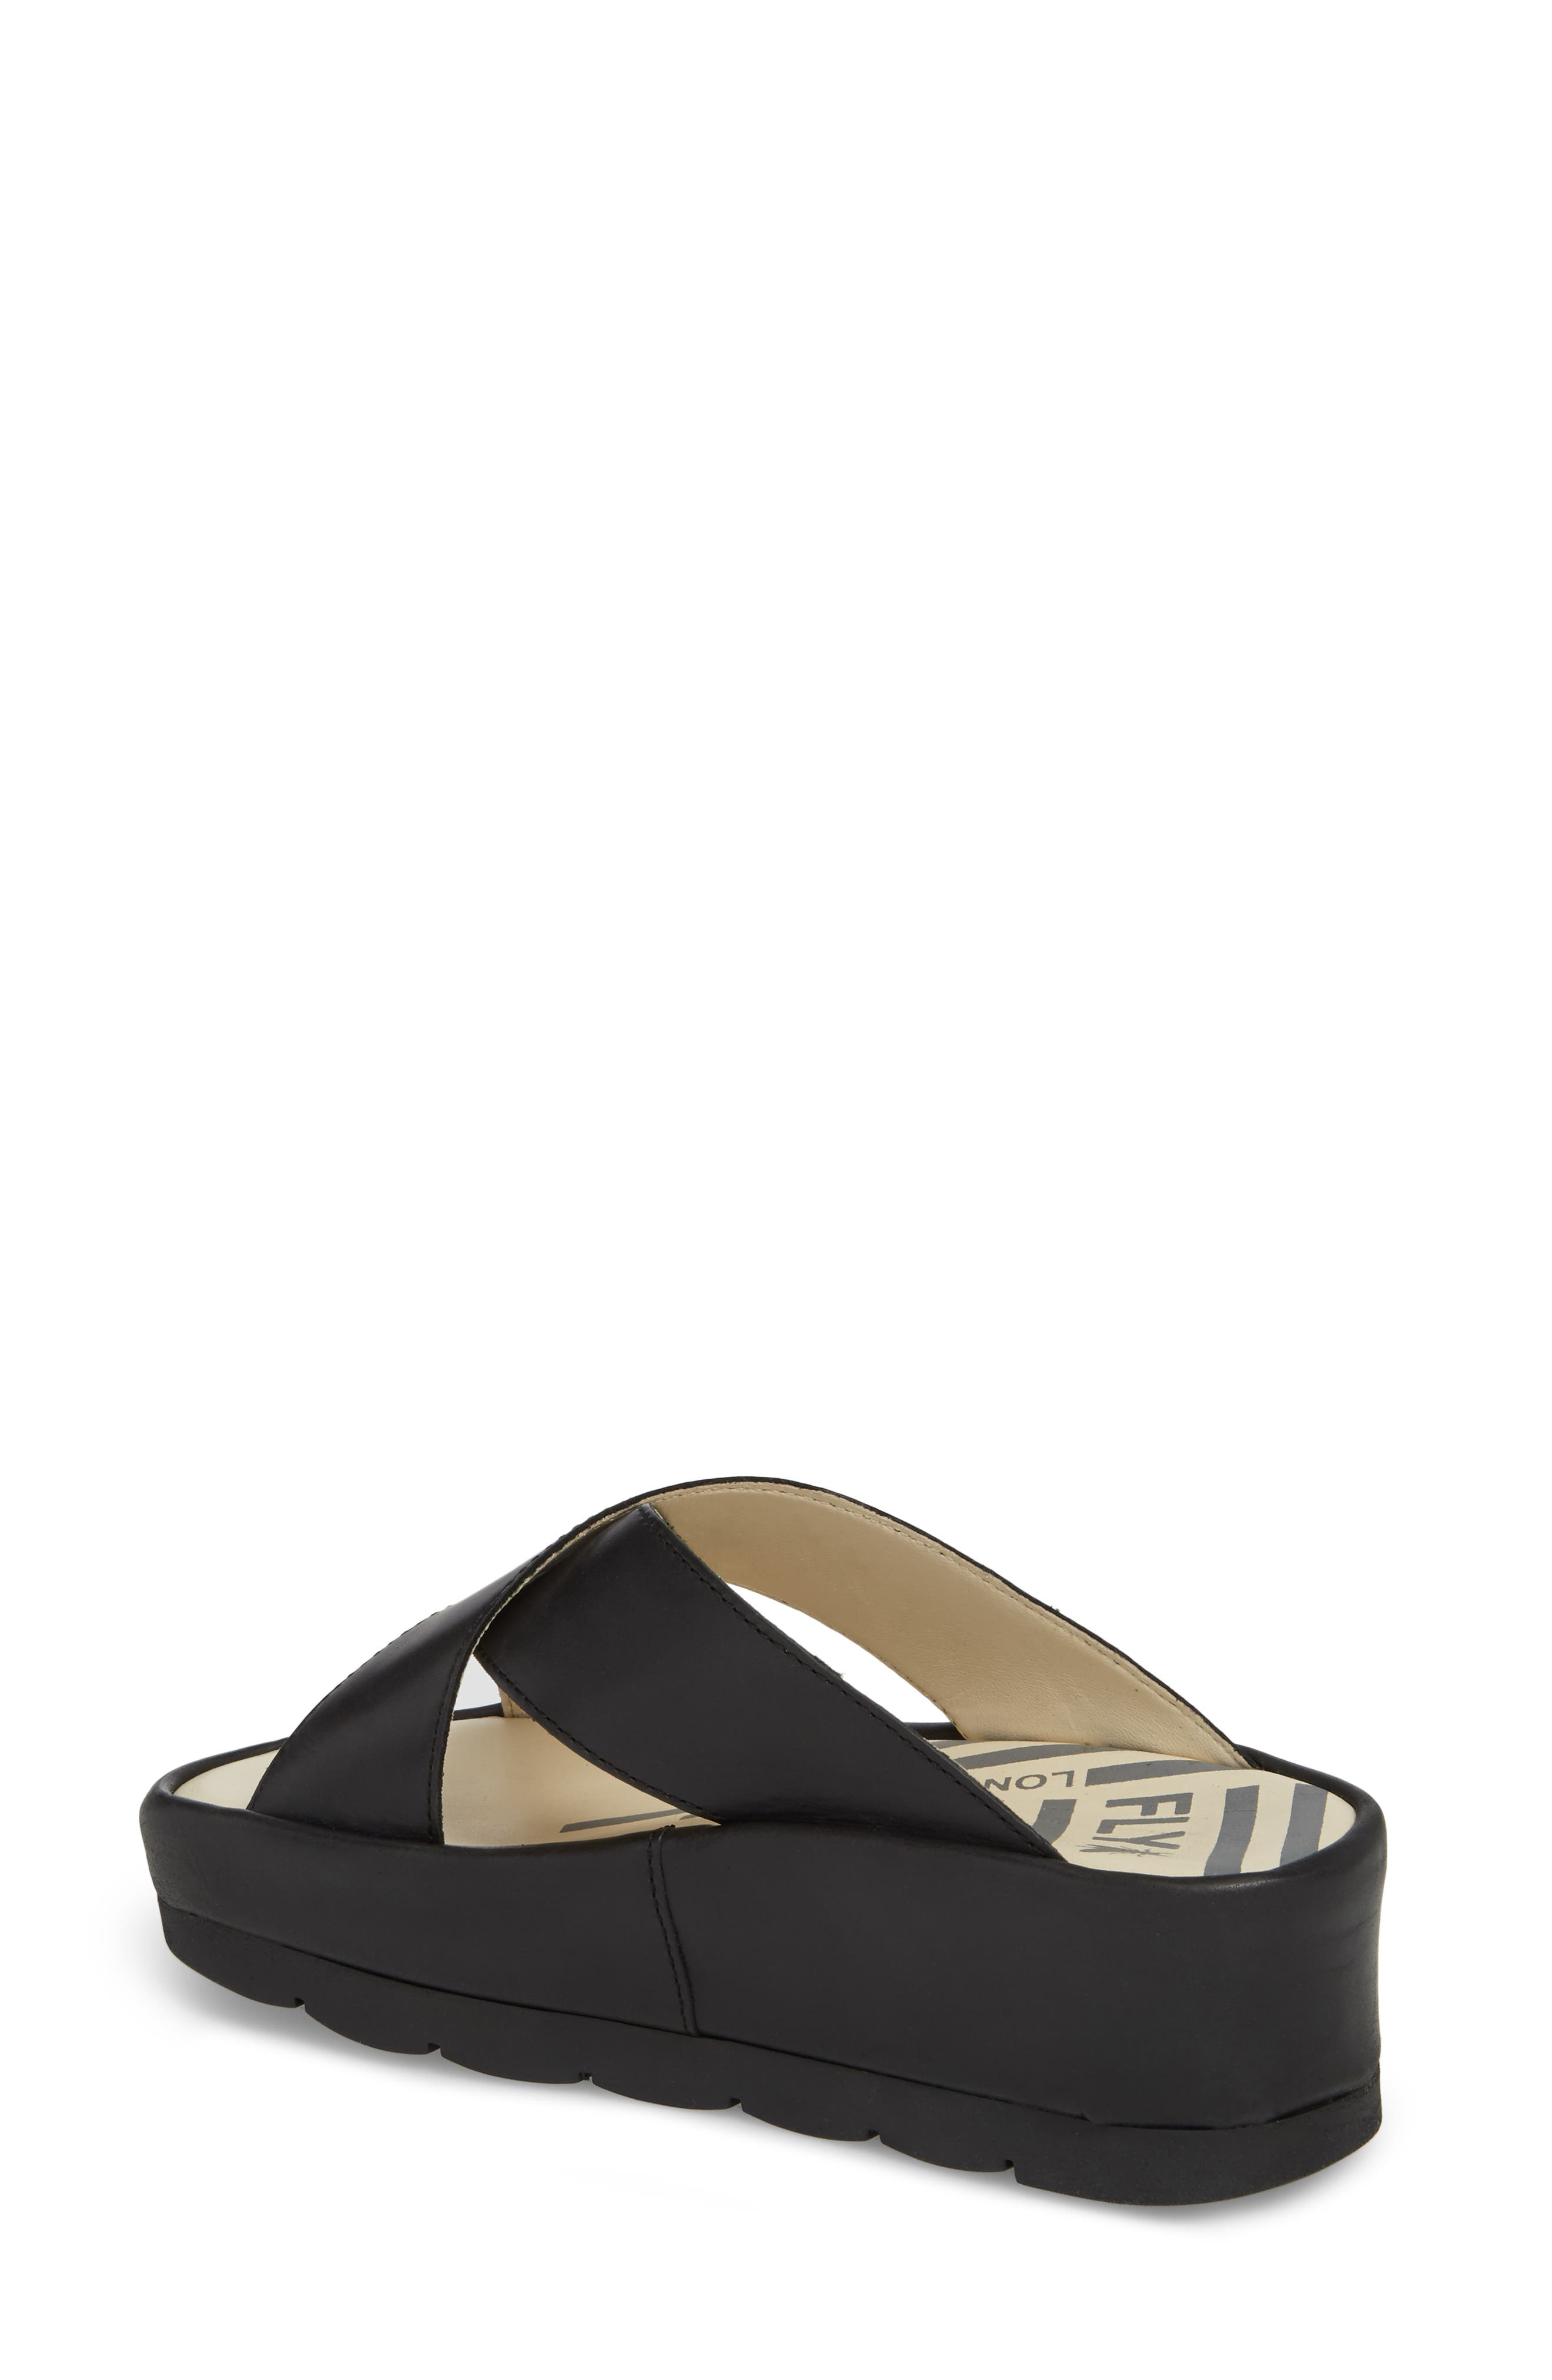 Begs Platform Slide Sandal,                             Alternate thumbnail 2, color,                             BLACK RUG LEATHER